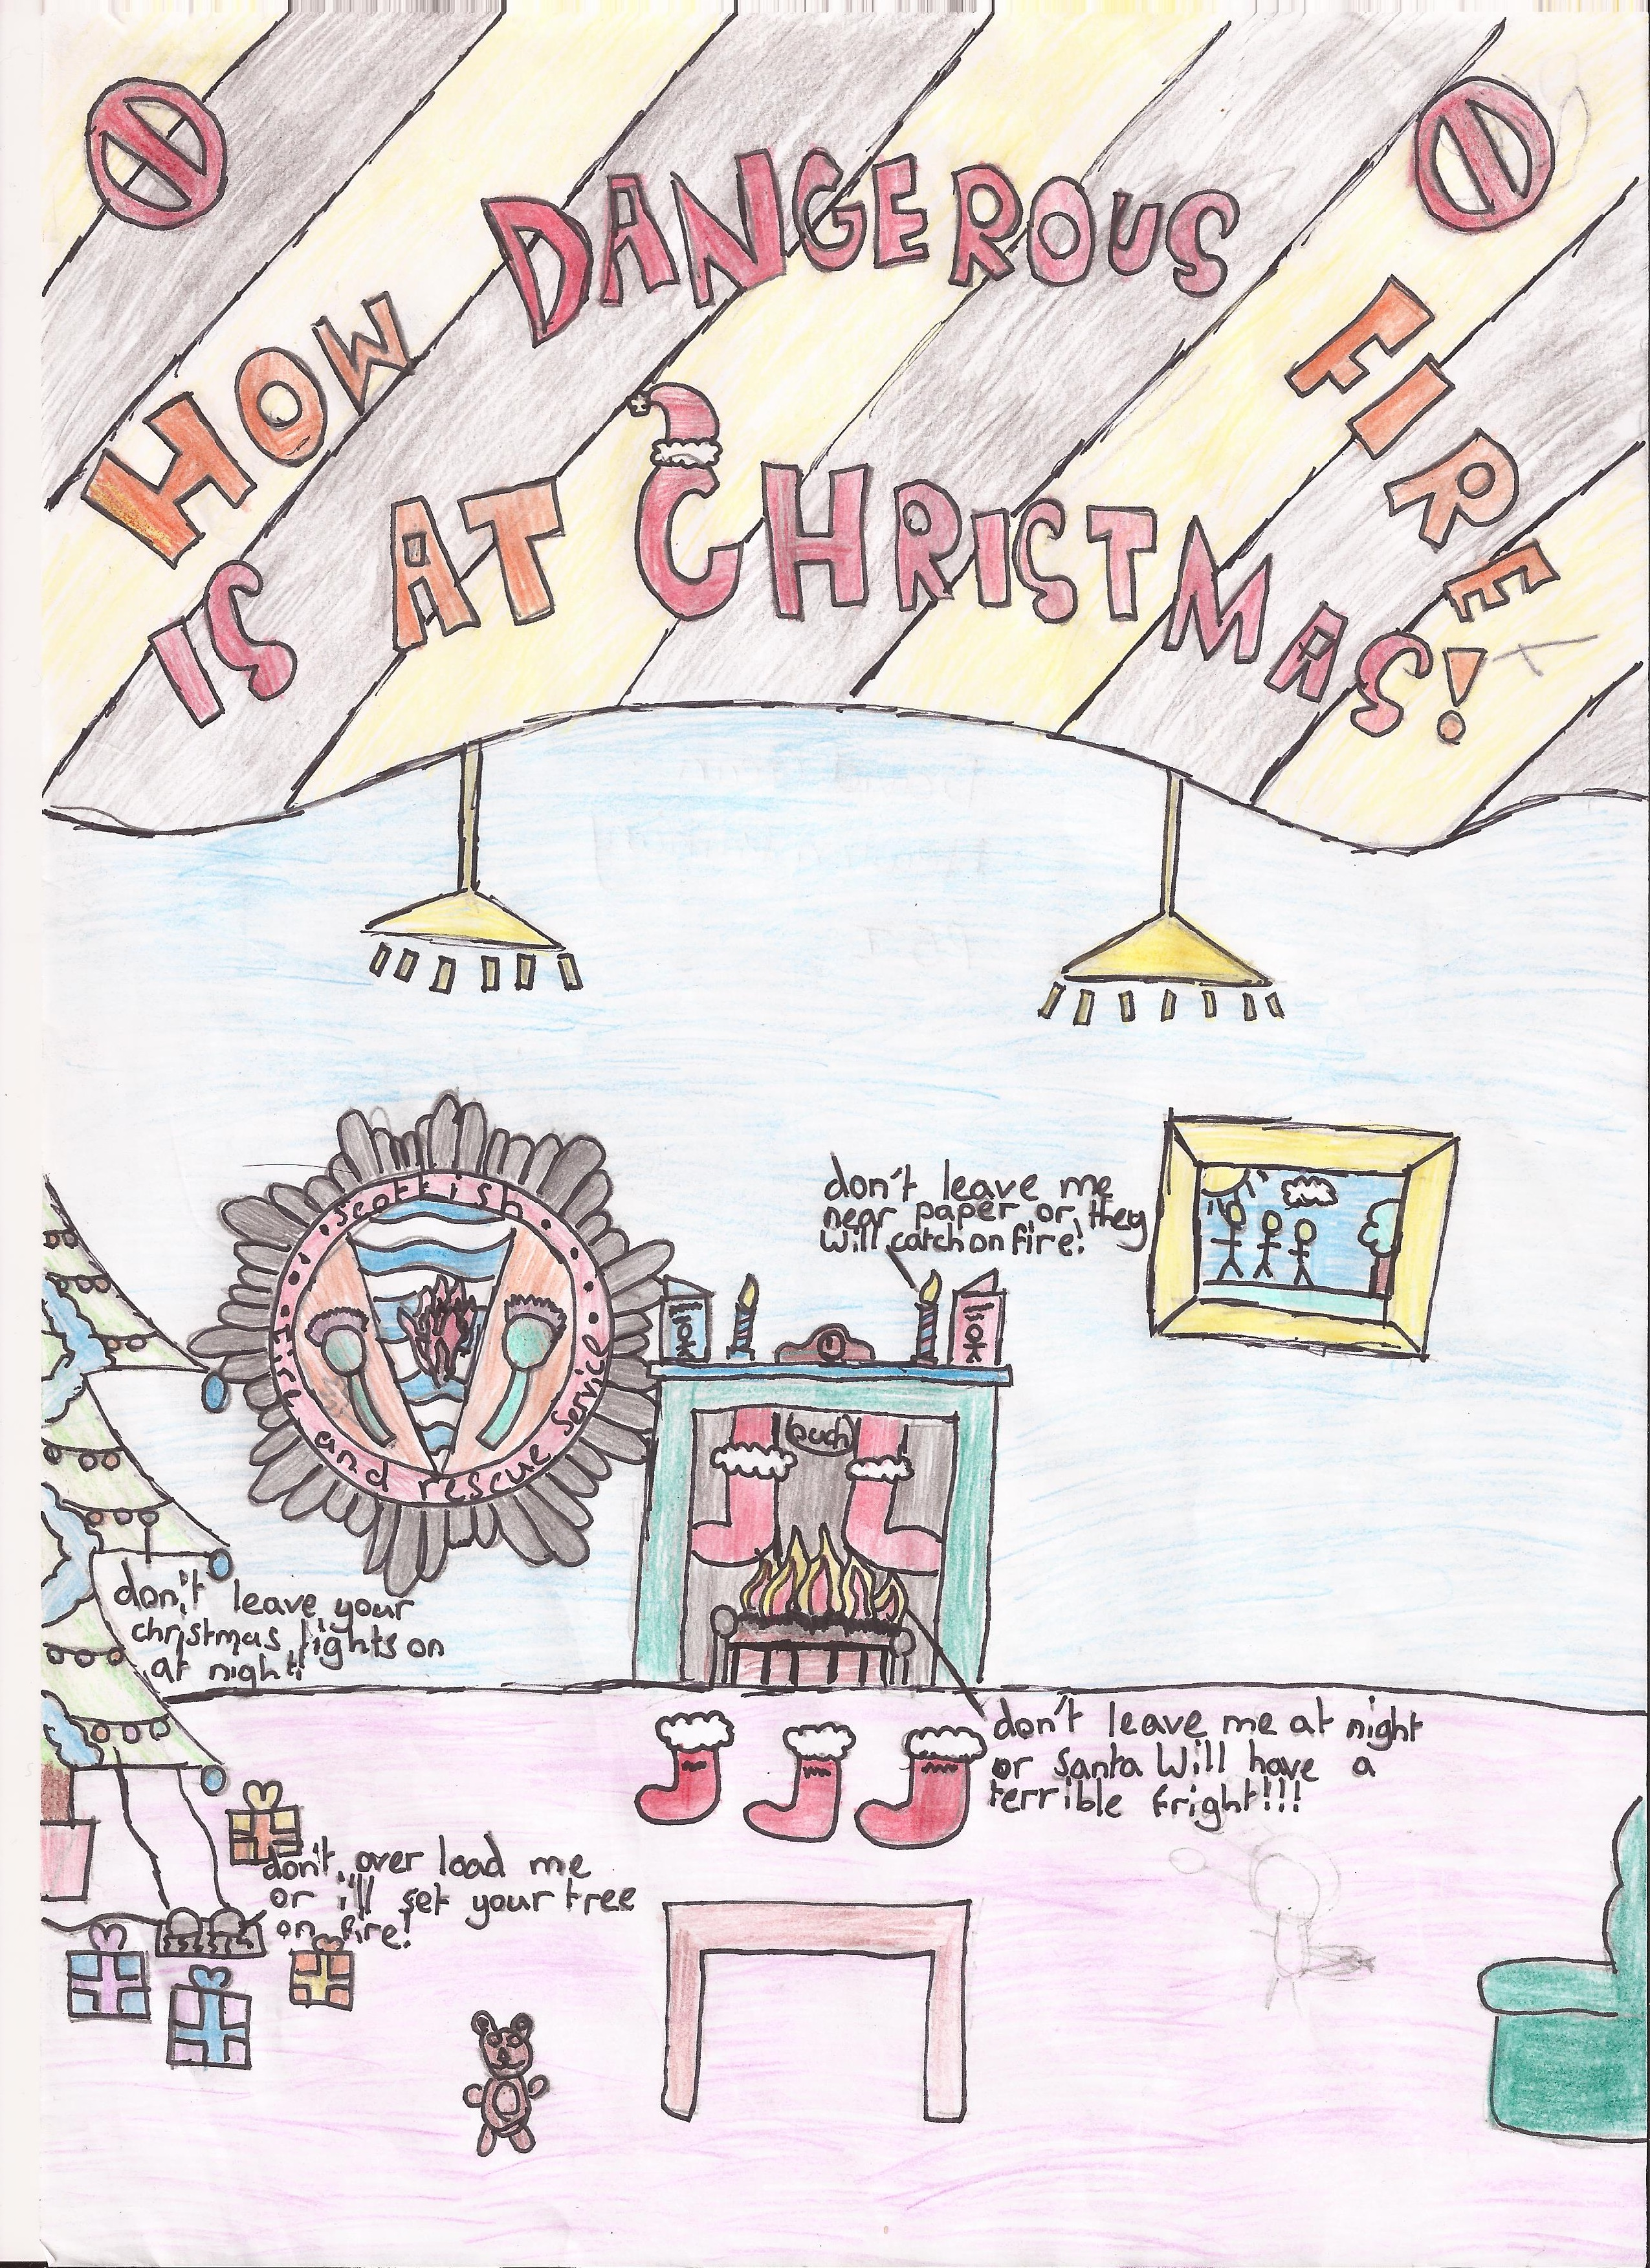 Primary schools in the Stirling area help raise awarness of Christmas safety